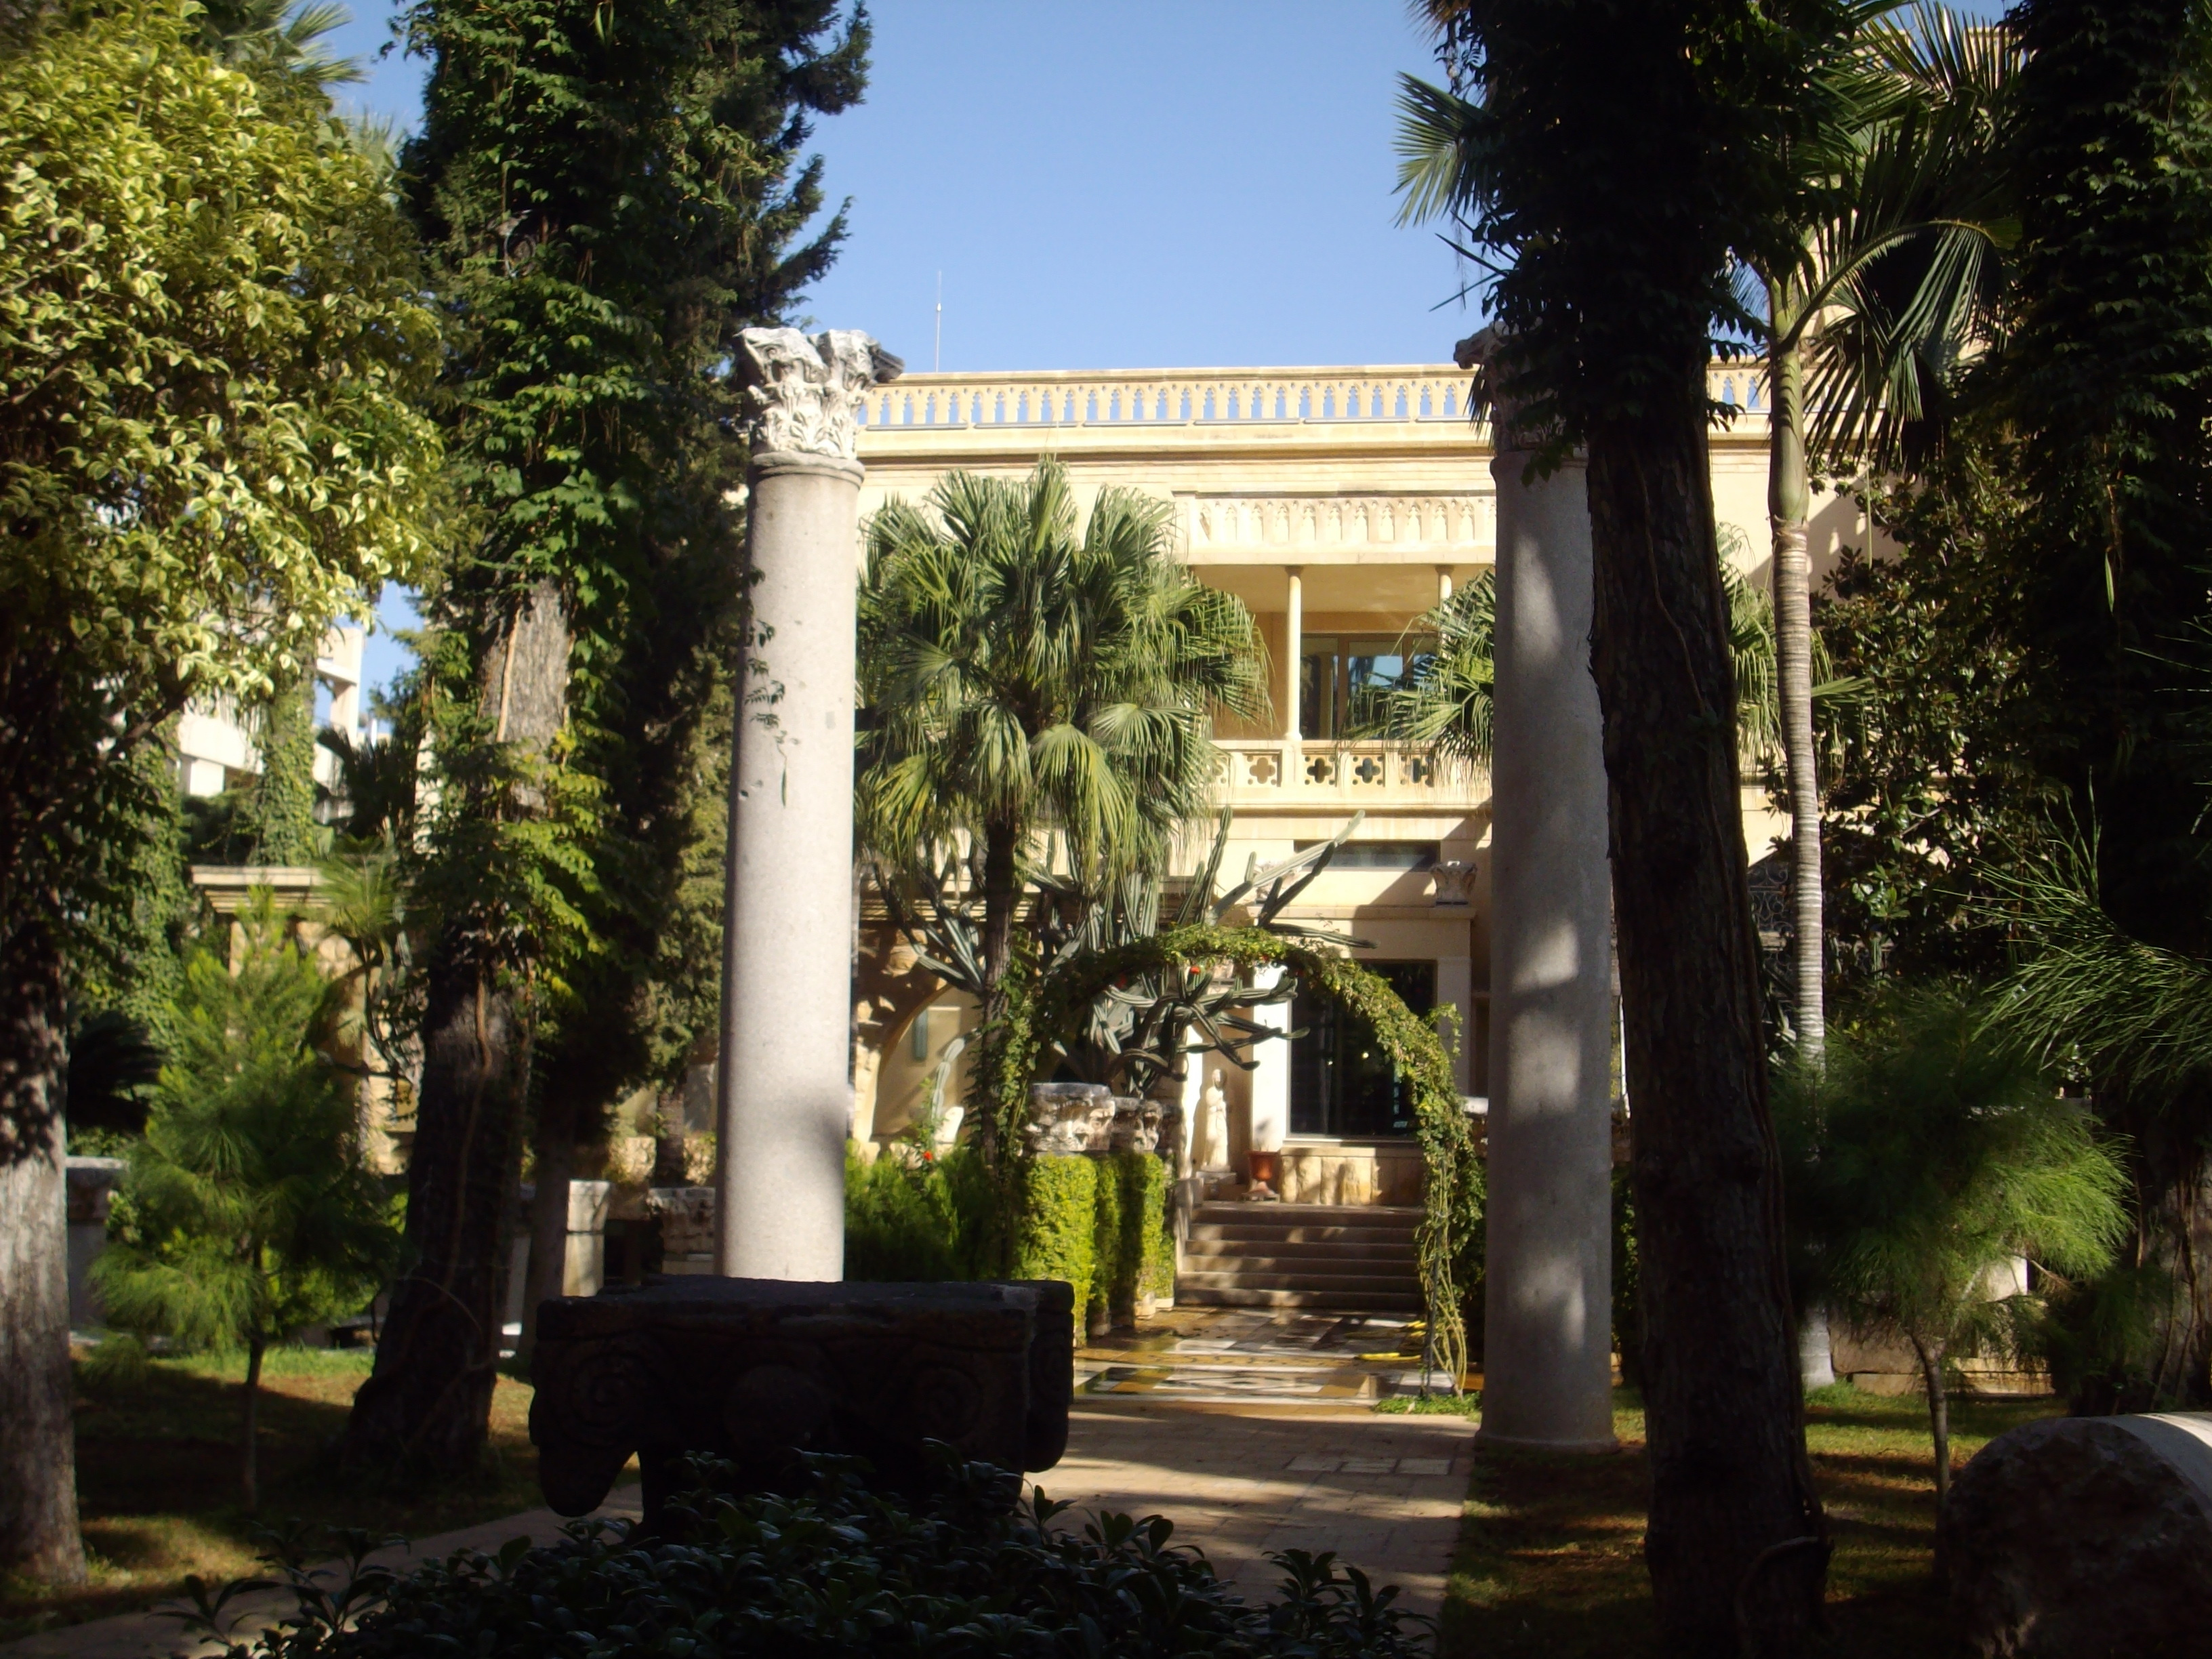 The Mouawad Private Museum in Beirut